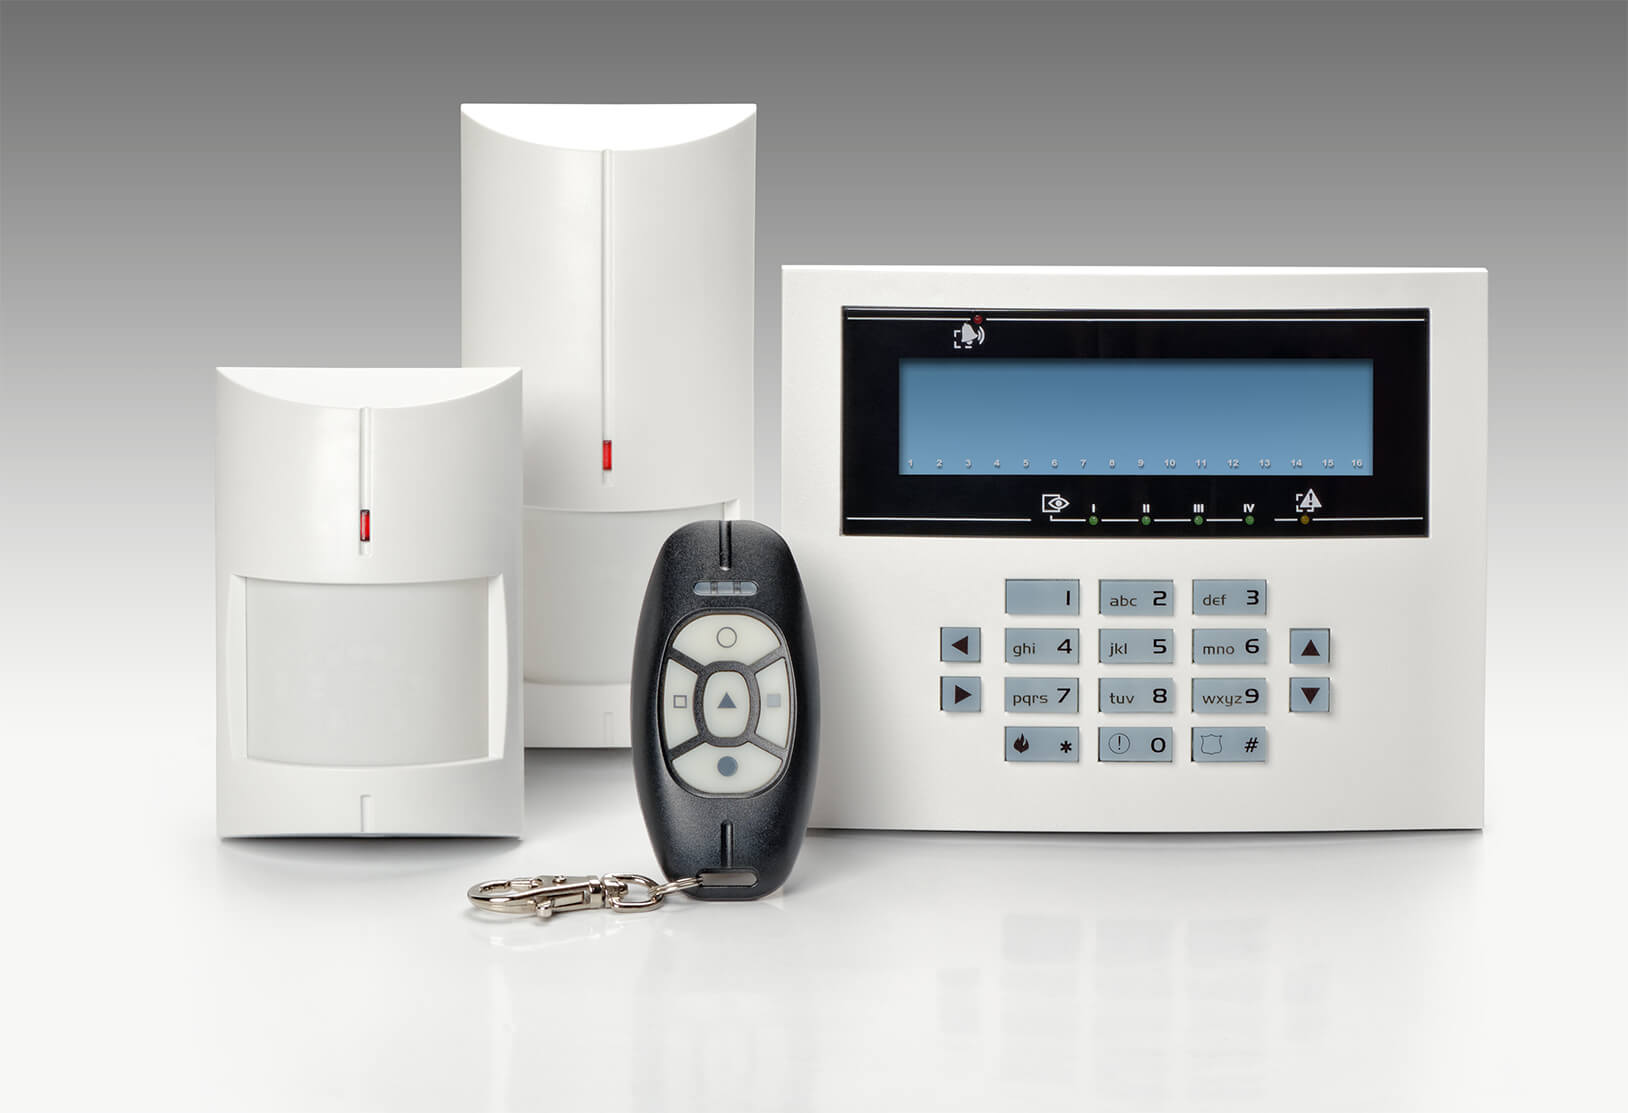 Business & Residential NACOSS Approved Burglar Alarms In Islington N1 - Local Islington N1 security company.Call 02078872244 - Dedicated to Safety & Security. Companies, shops and homes ..